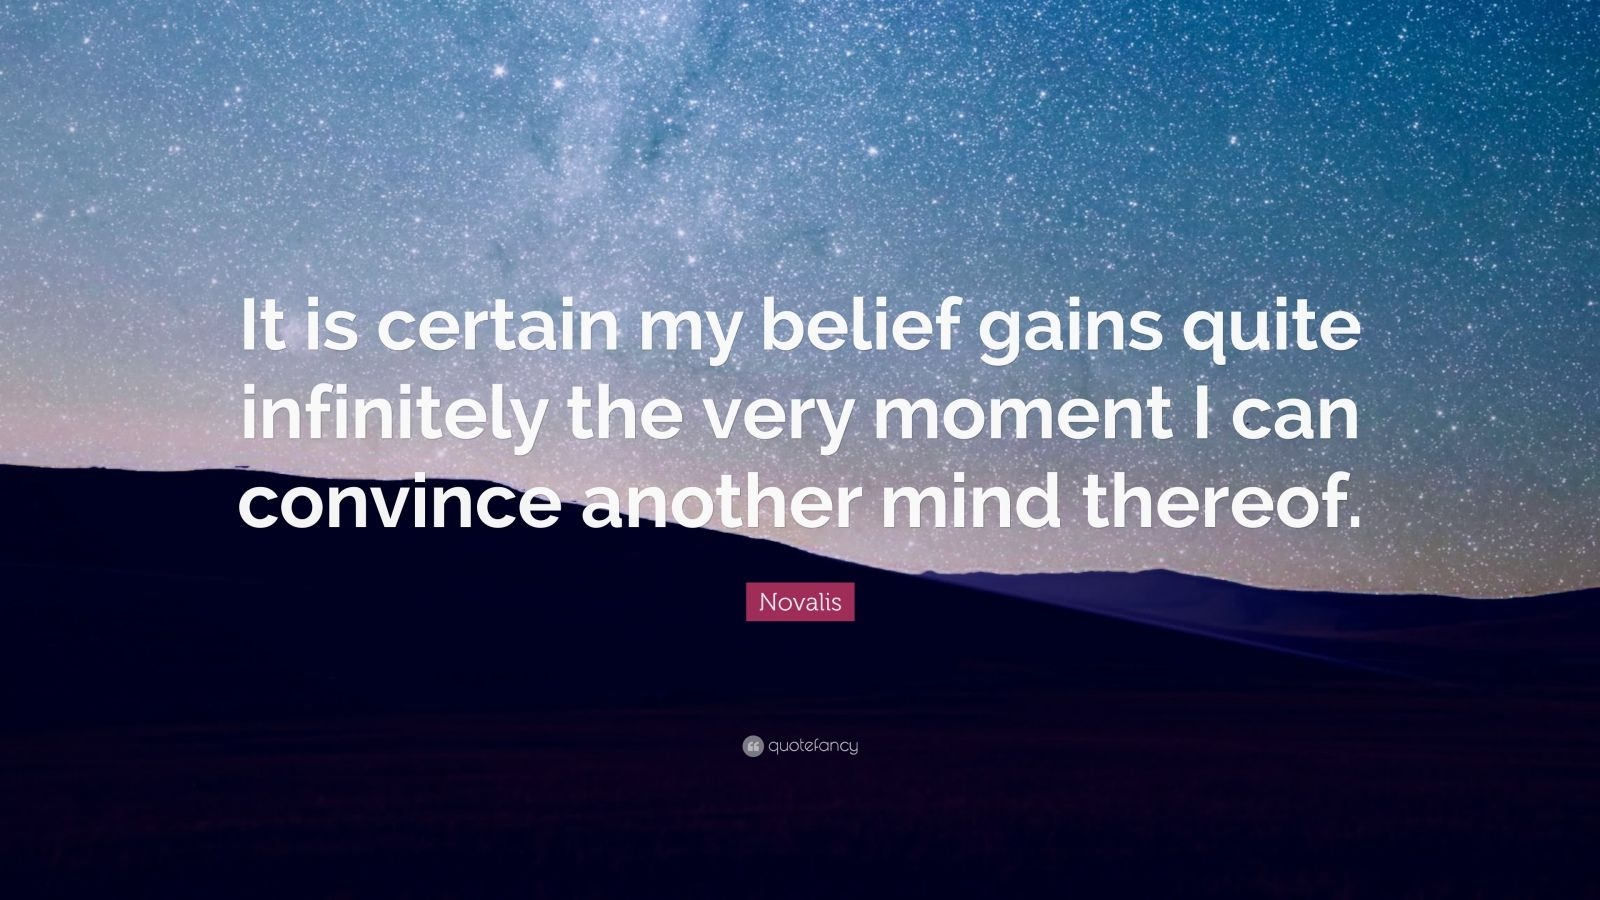 """Novalis Quote: """"It is certain my belief gains quite infinitely the very moment I can convince another mind thereof."""""""